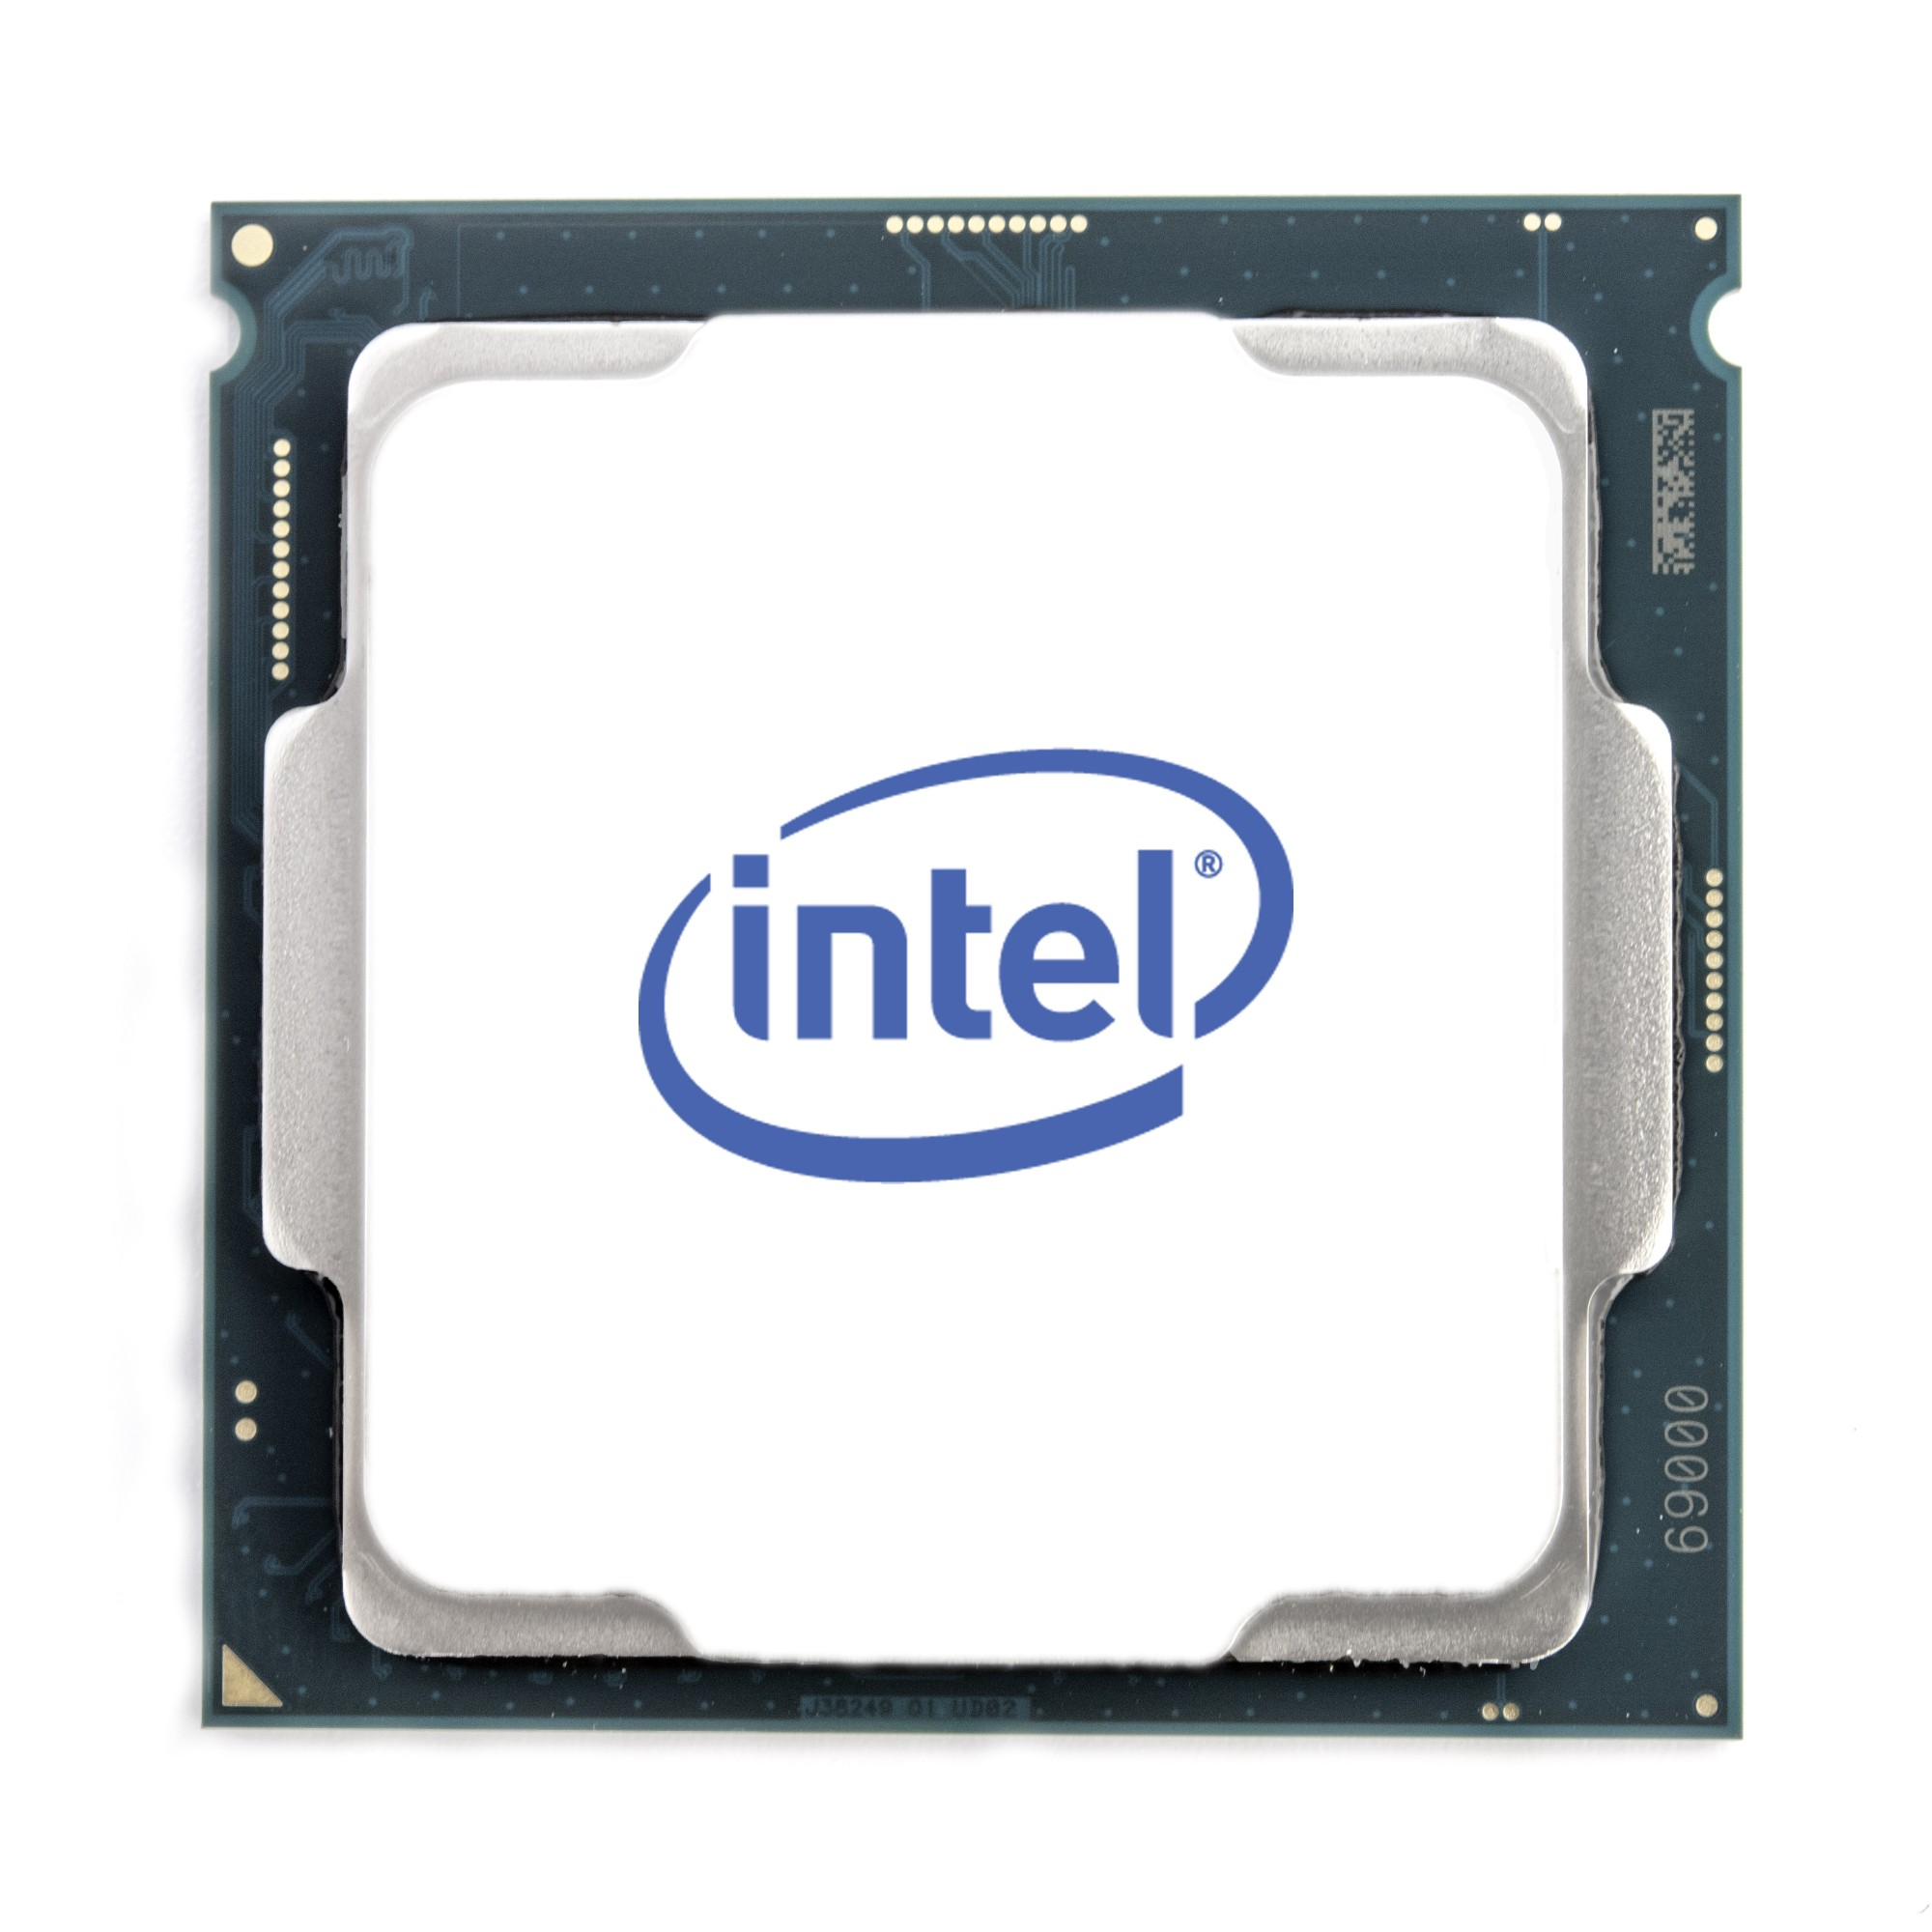 Intel Xeon E-2236 processor 3.4 GHz 12 MB